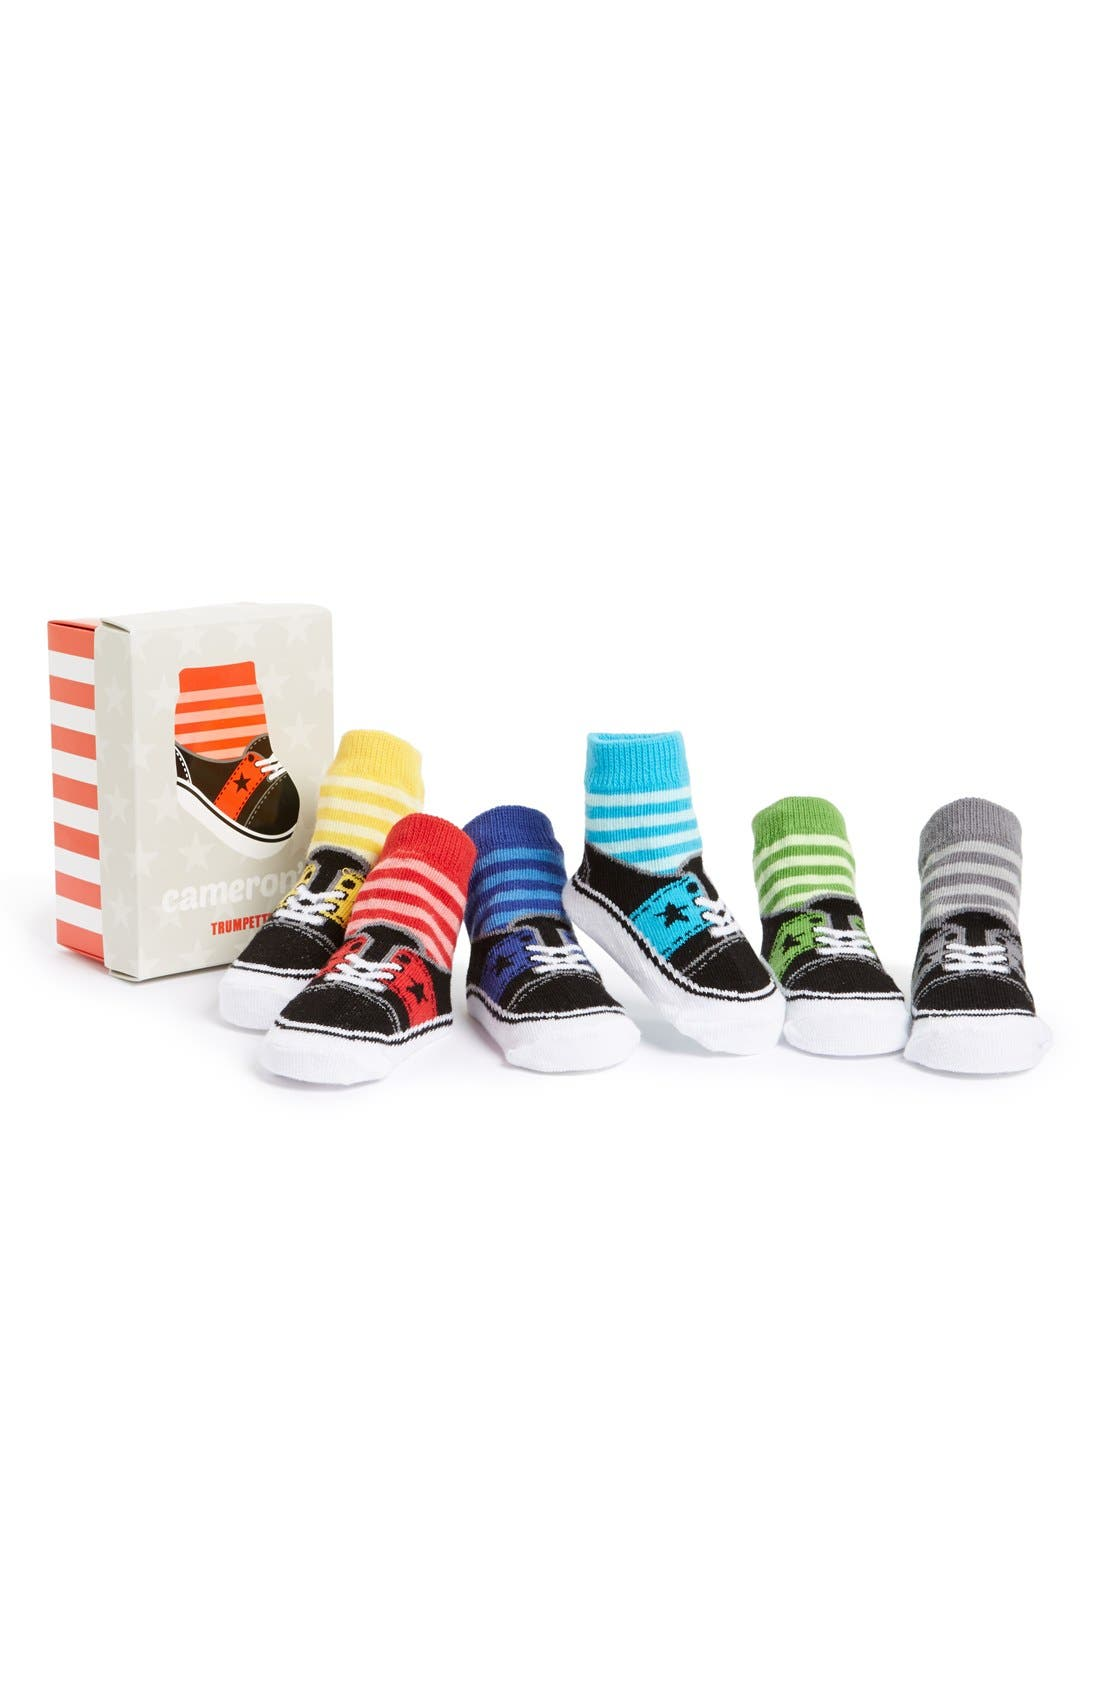 Alternate Image 1 Selected - Trumpette Cameron 6-Pack Socks (Baby Boys)